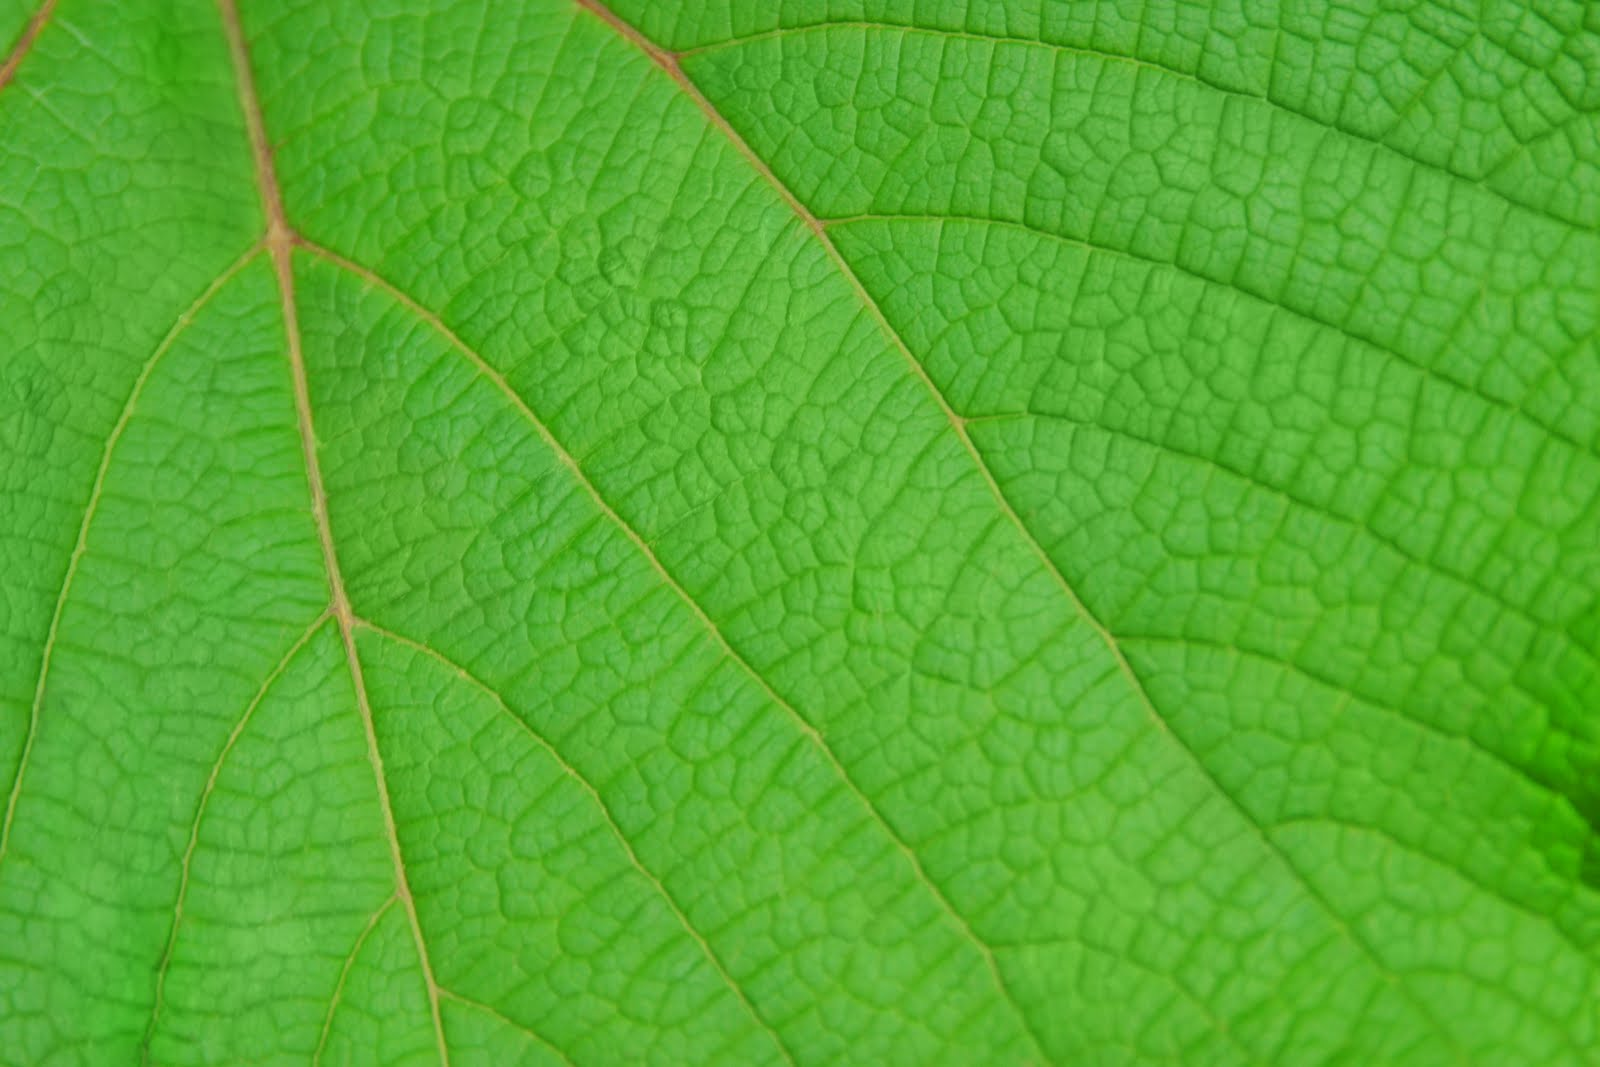 Download image Imagenes De Hojas Verdes PC, Android, iPhone and iPad